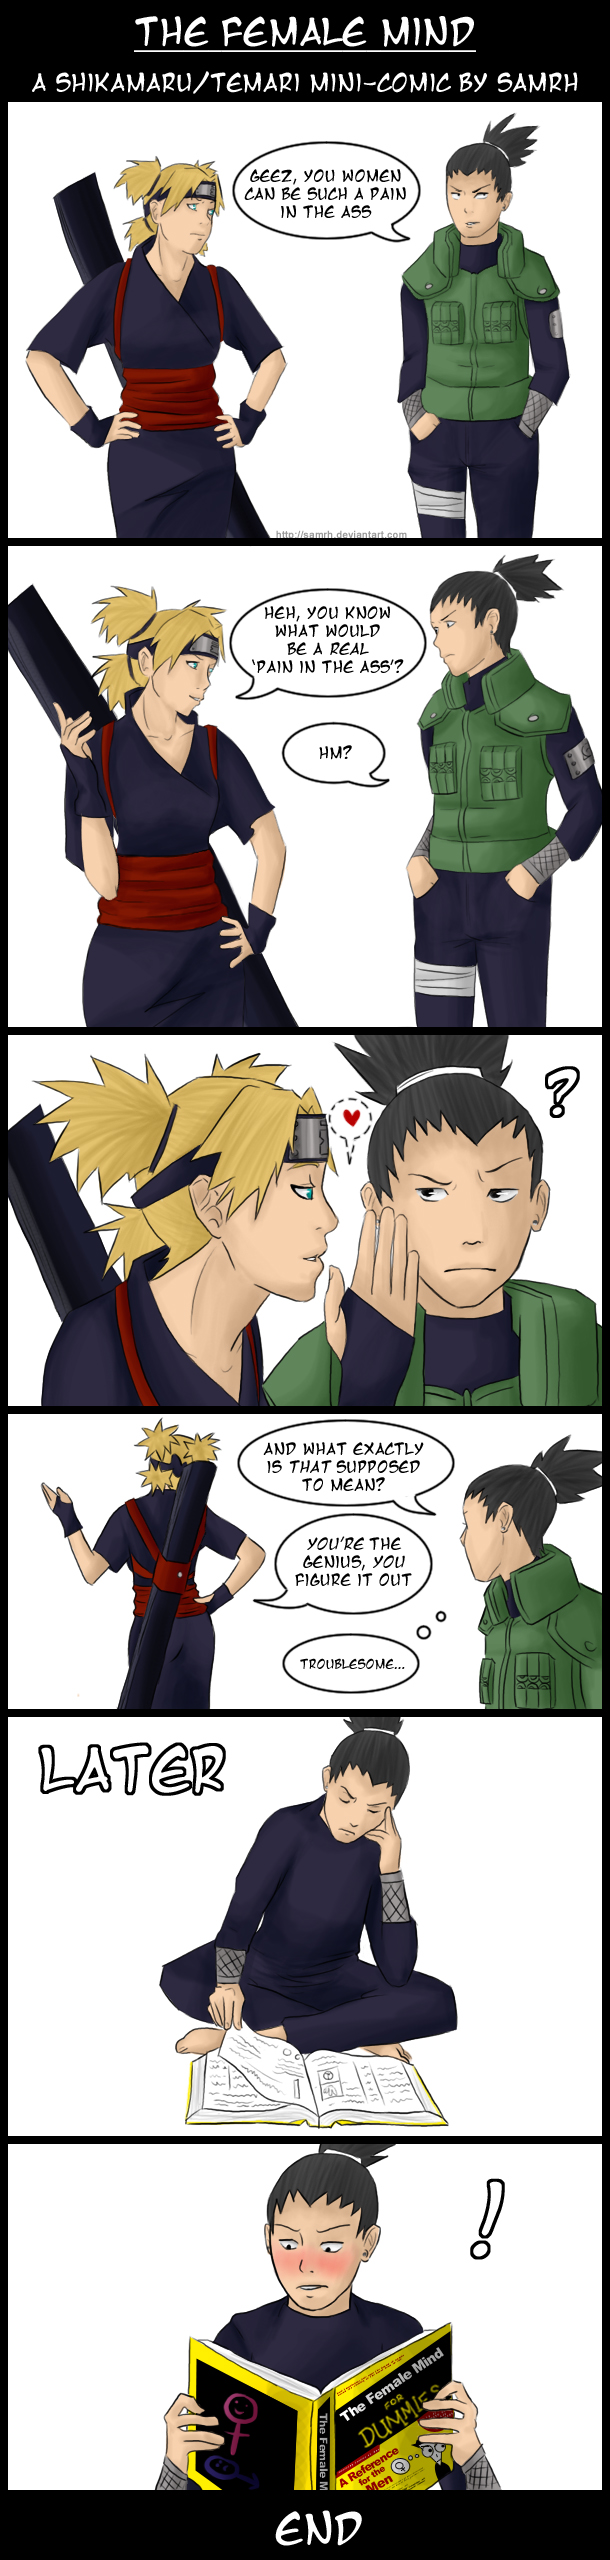 Naruto- Comic: The Female Mind by SamRH